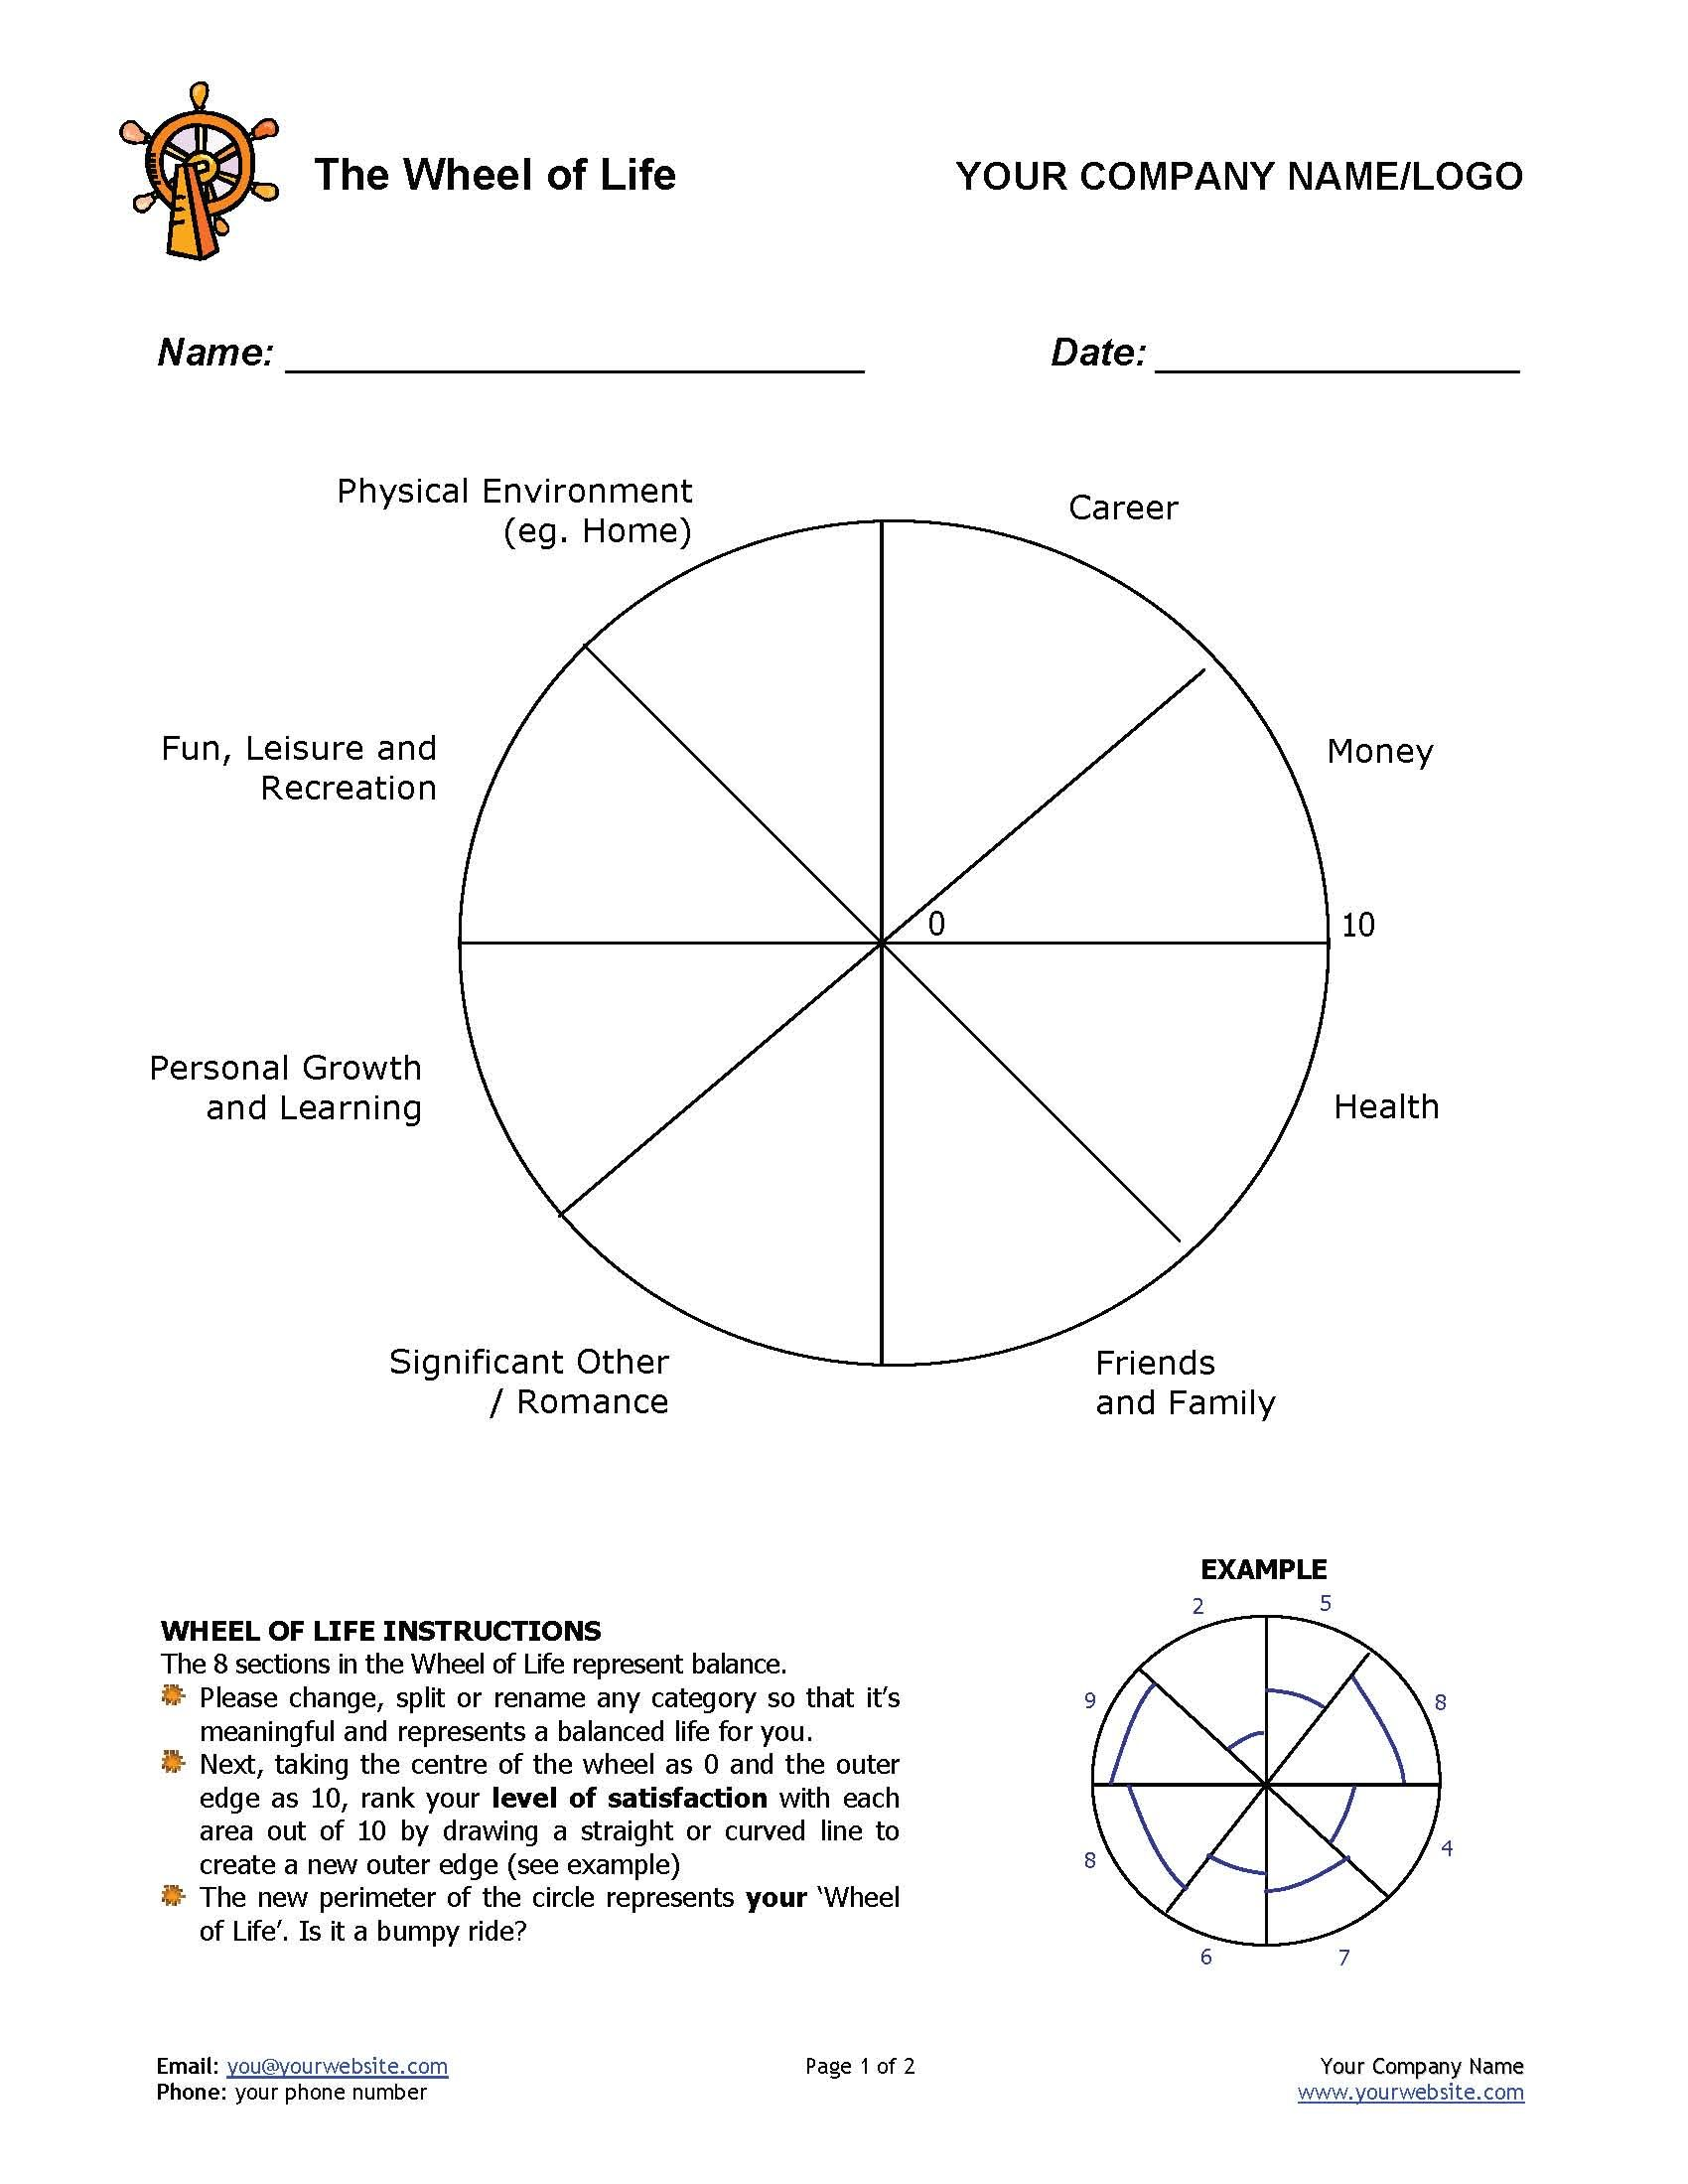 worksheet Life Coaching Worksheets 12 awesome new ways to use the wheel of life tool in your coaching article coaching